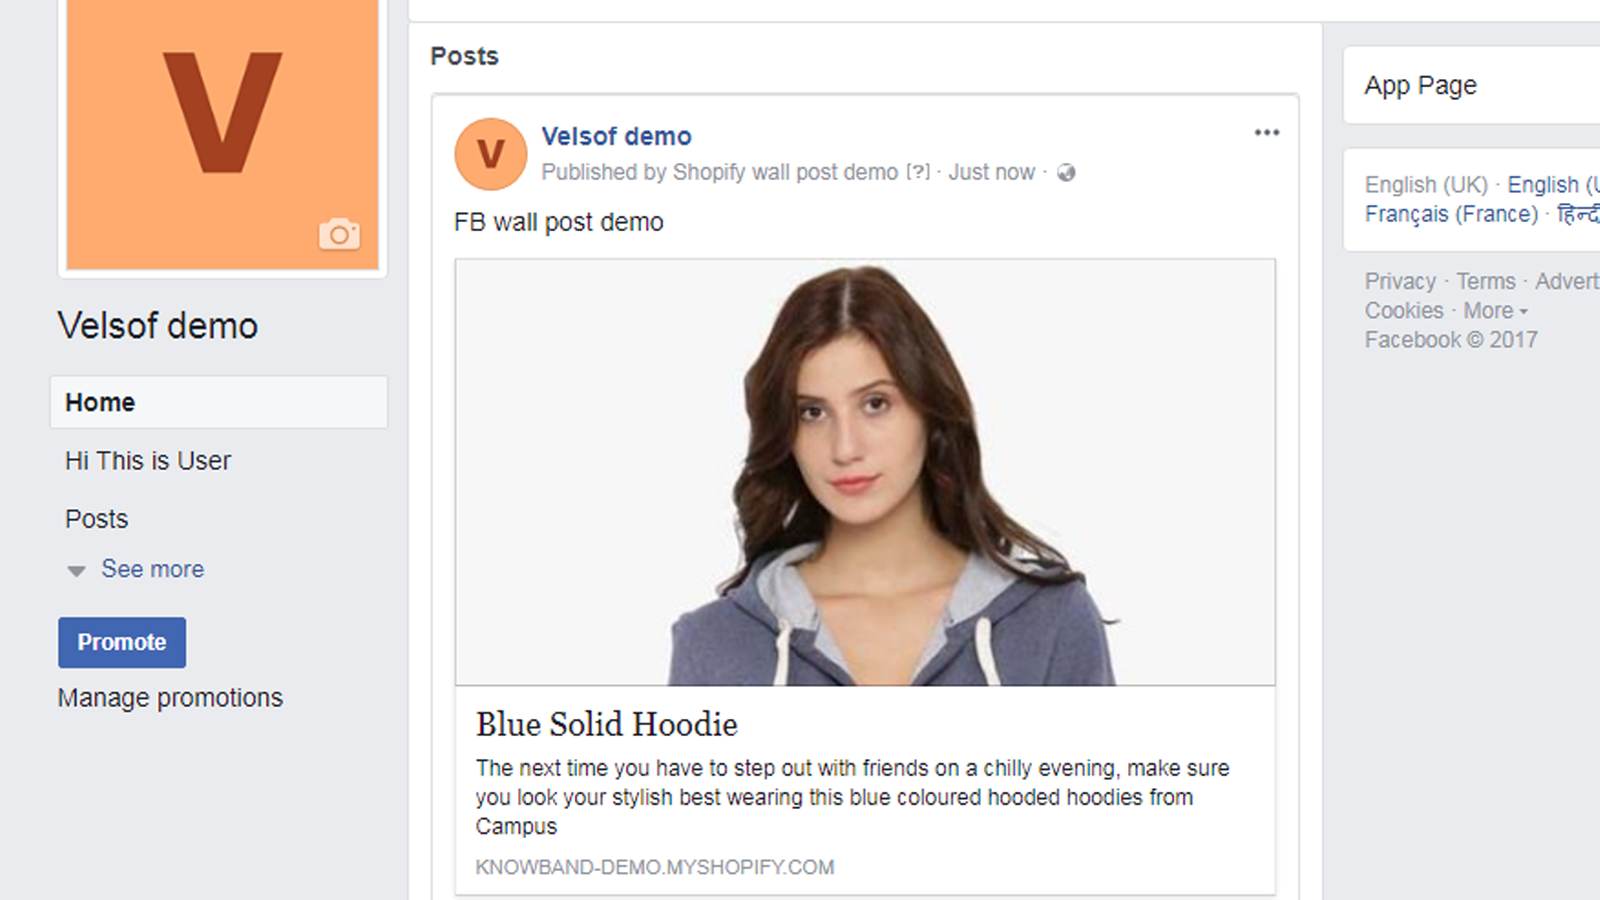 Facebook Page Preview of posted product Information